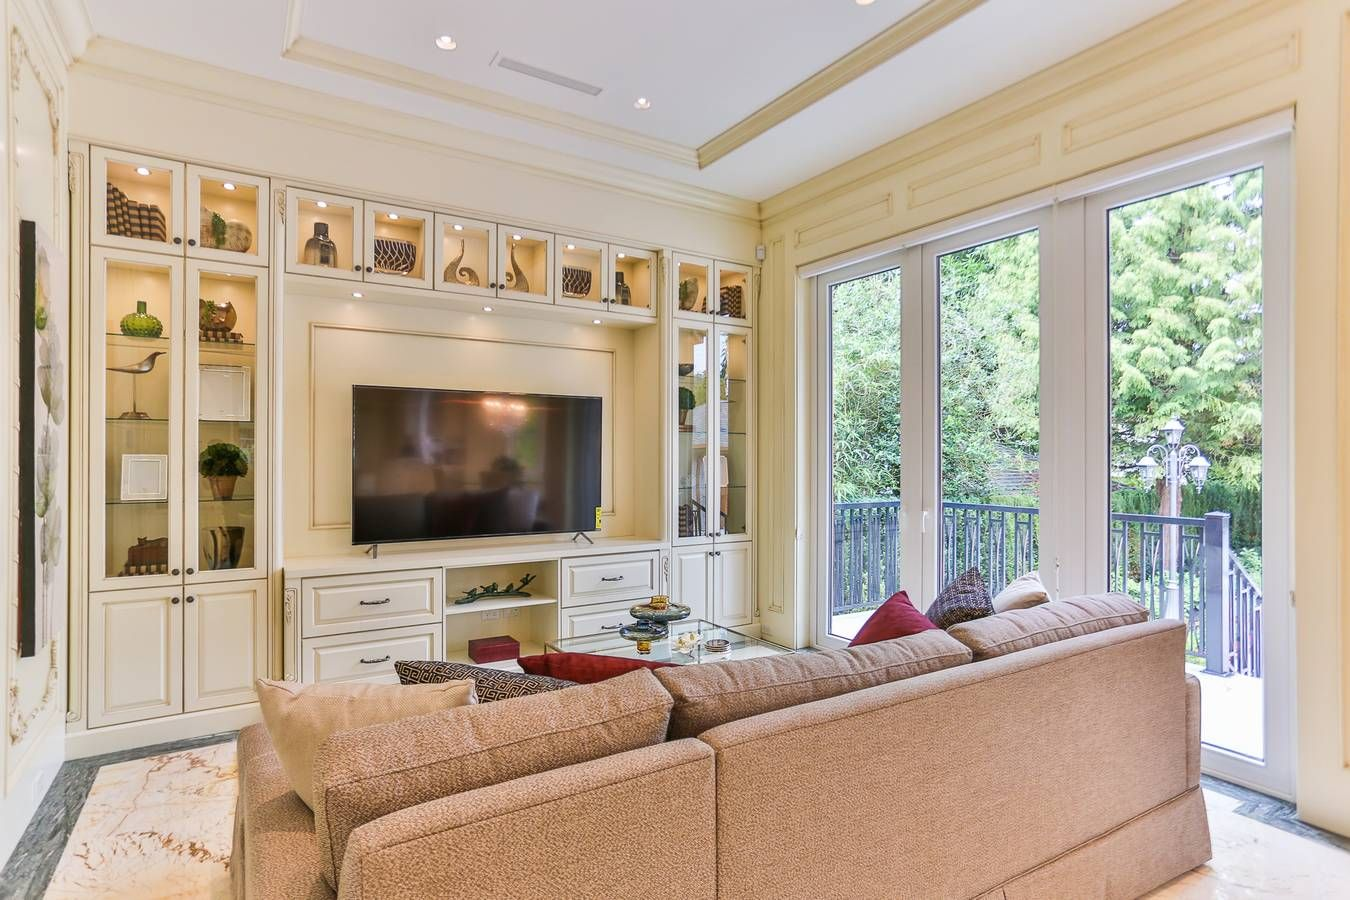 Photo 6: Photos: 5845 WILTSHIRE Street in Vancouver: South Granville House for sale (Vancouver West)  : MLS®# R2132563